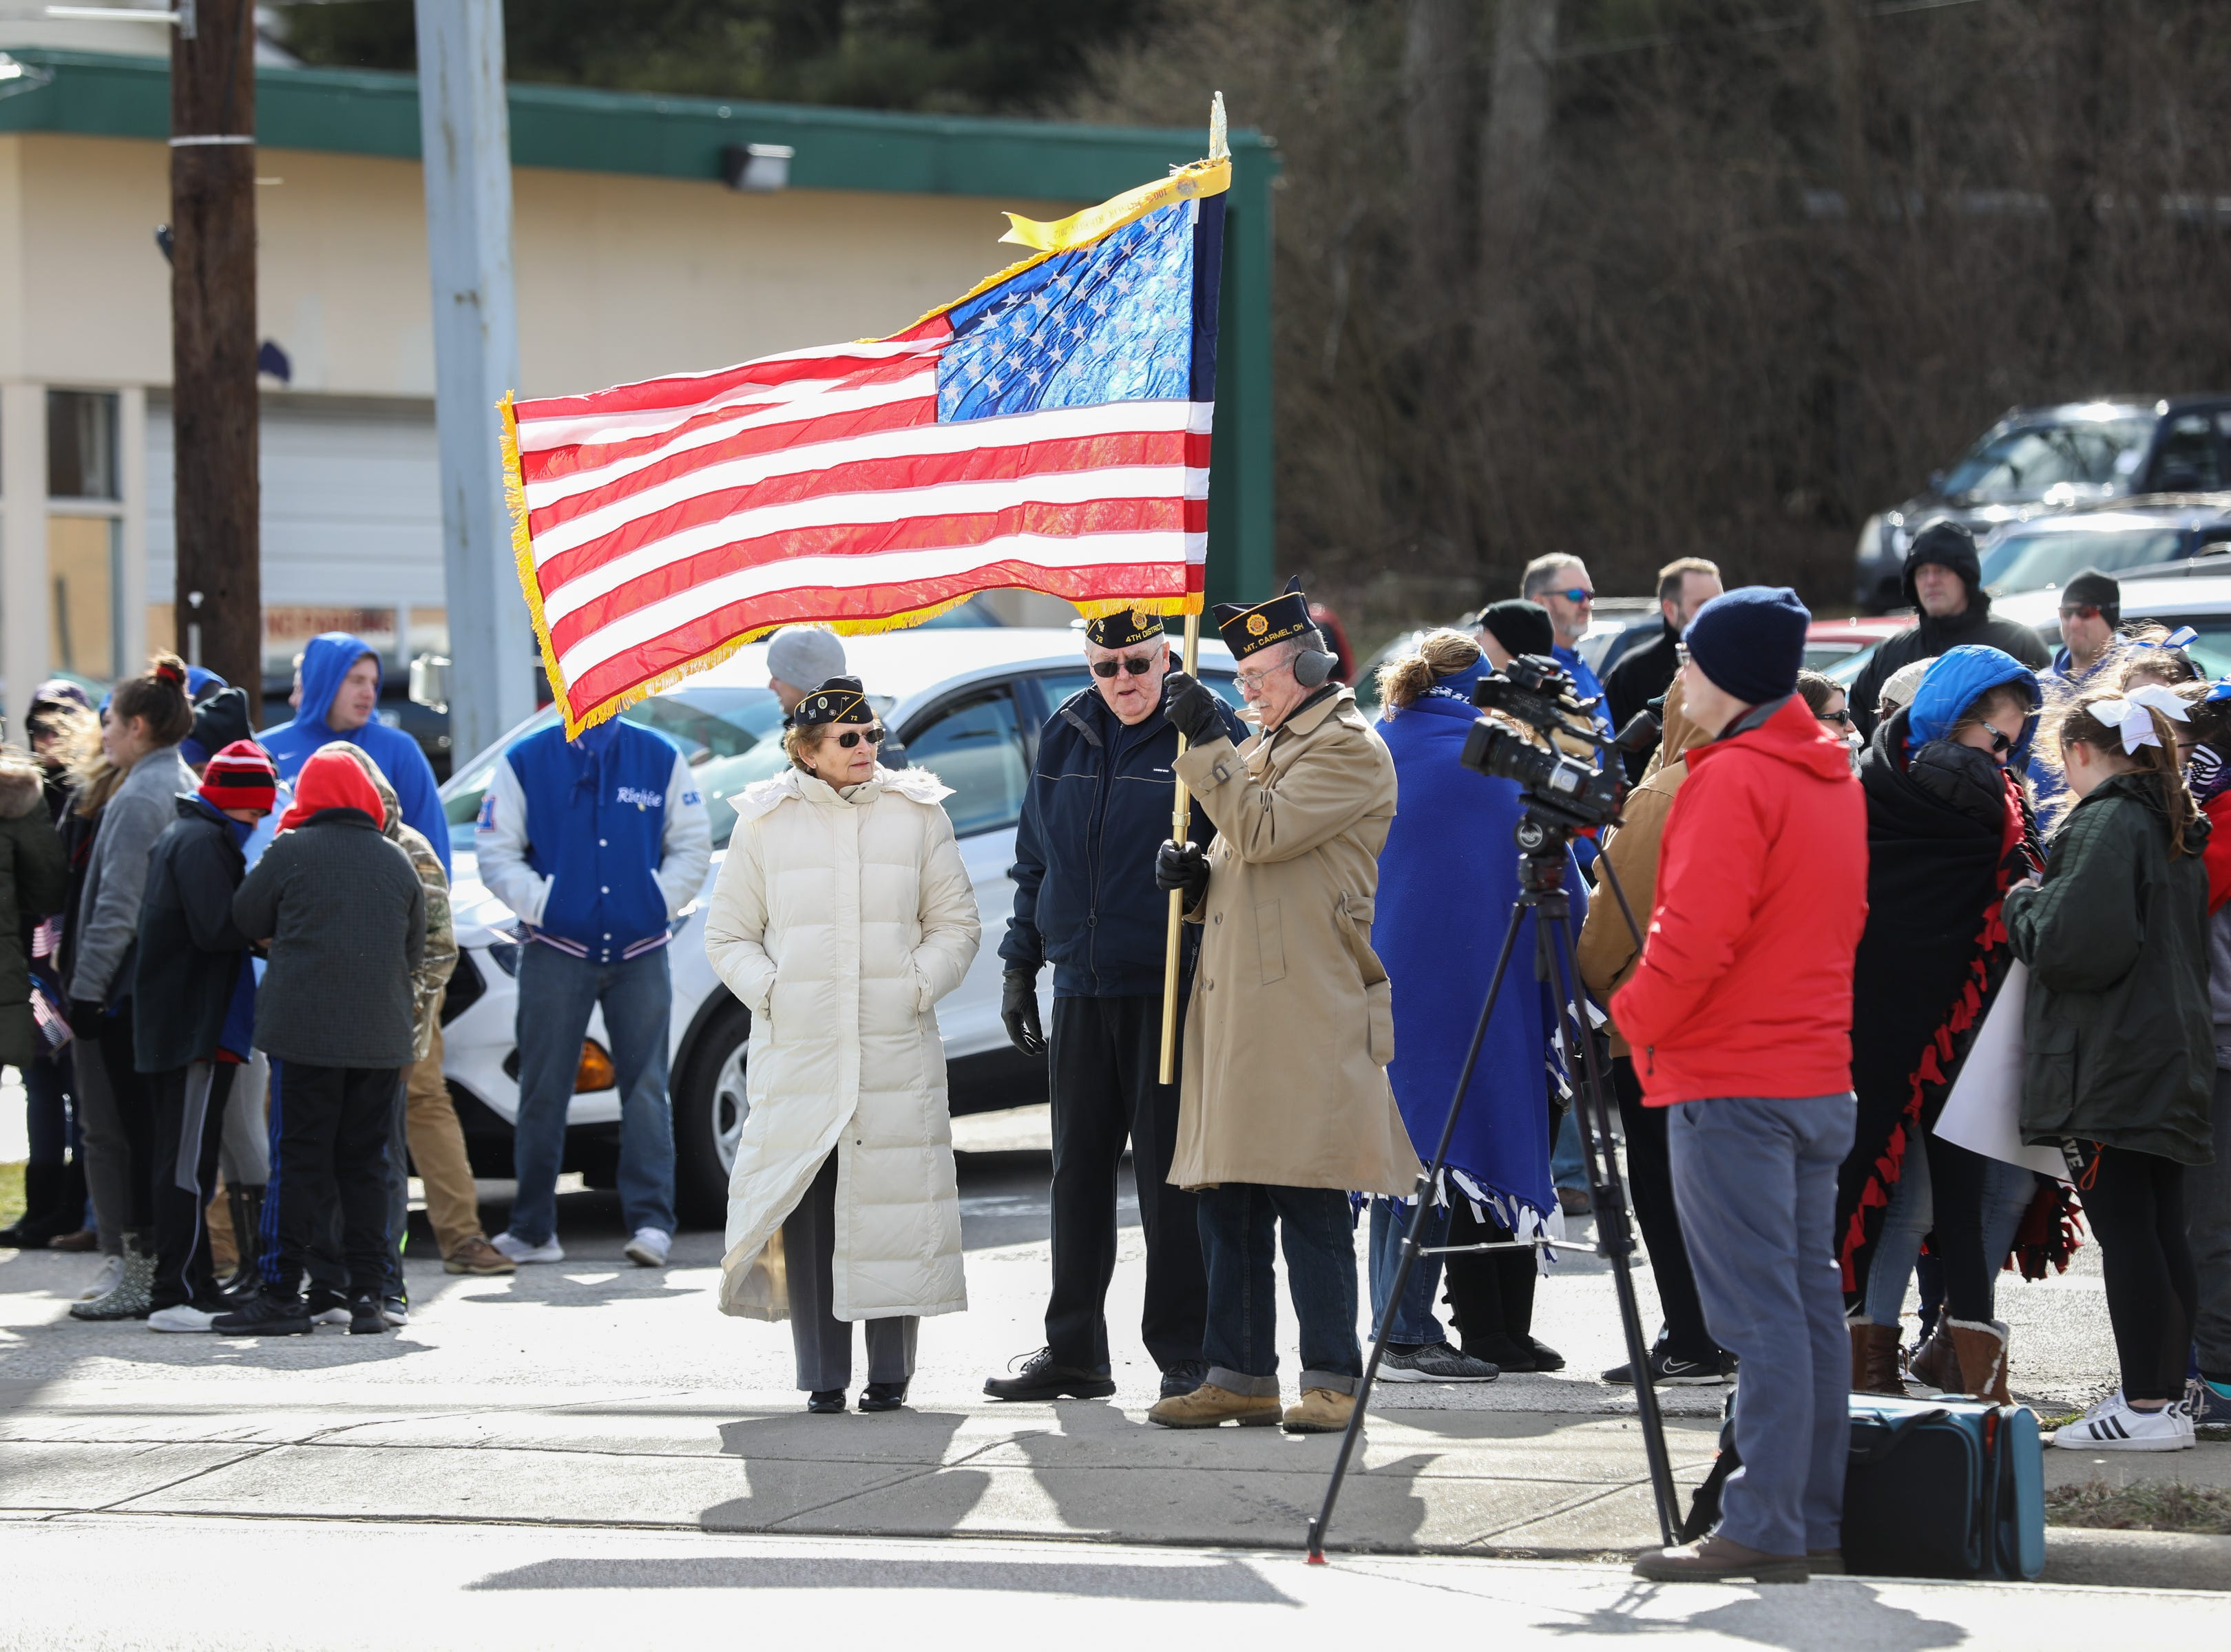 Crowds gather to observe the procession of Detective Bill Brewer as his body is moved through the communities he protected on the way to the funeral. Many carry flags and signs sharing their support for the police and thanking Officer Brewer for his service.